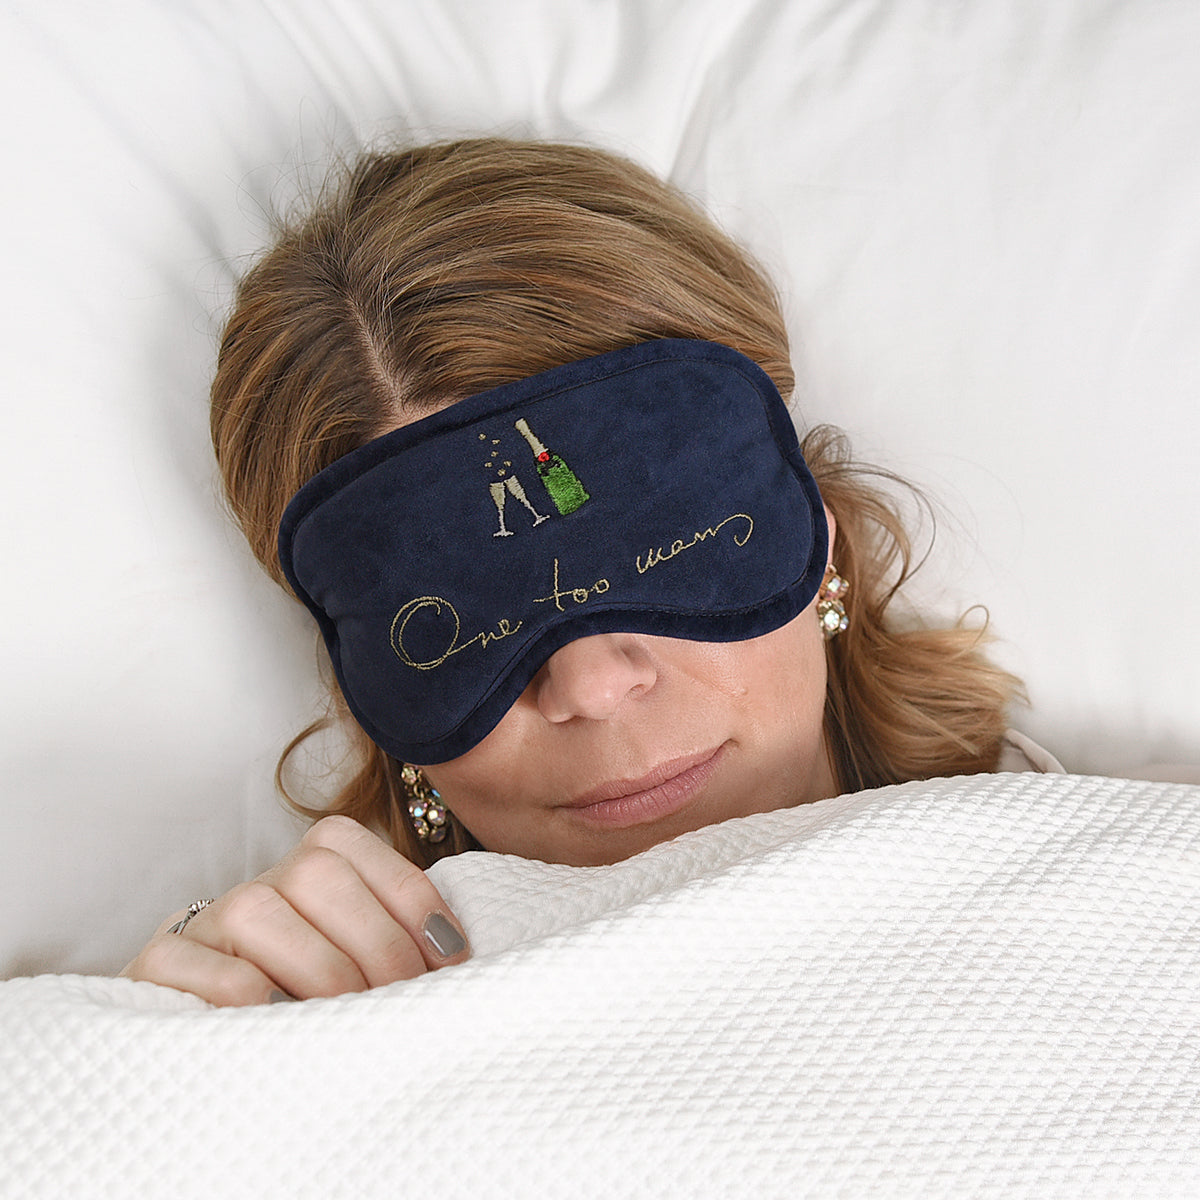 Bubbles & Fizz Sleep Mask - One too many